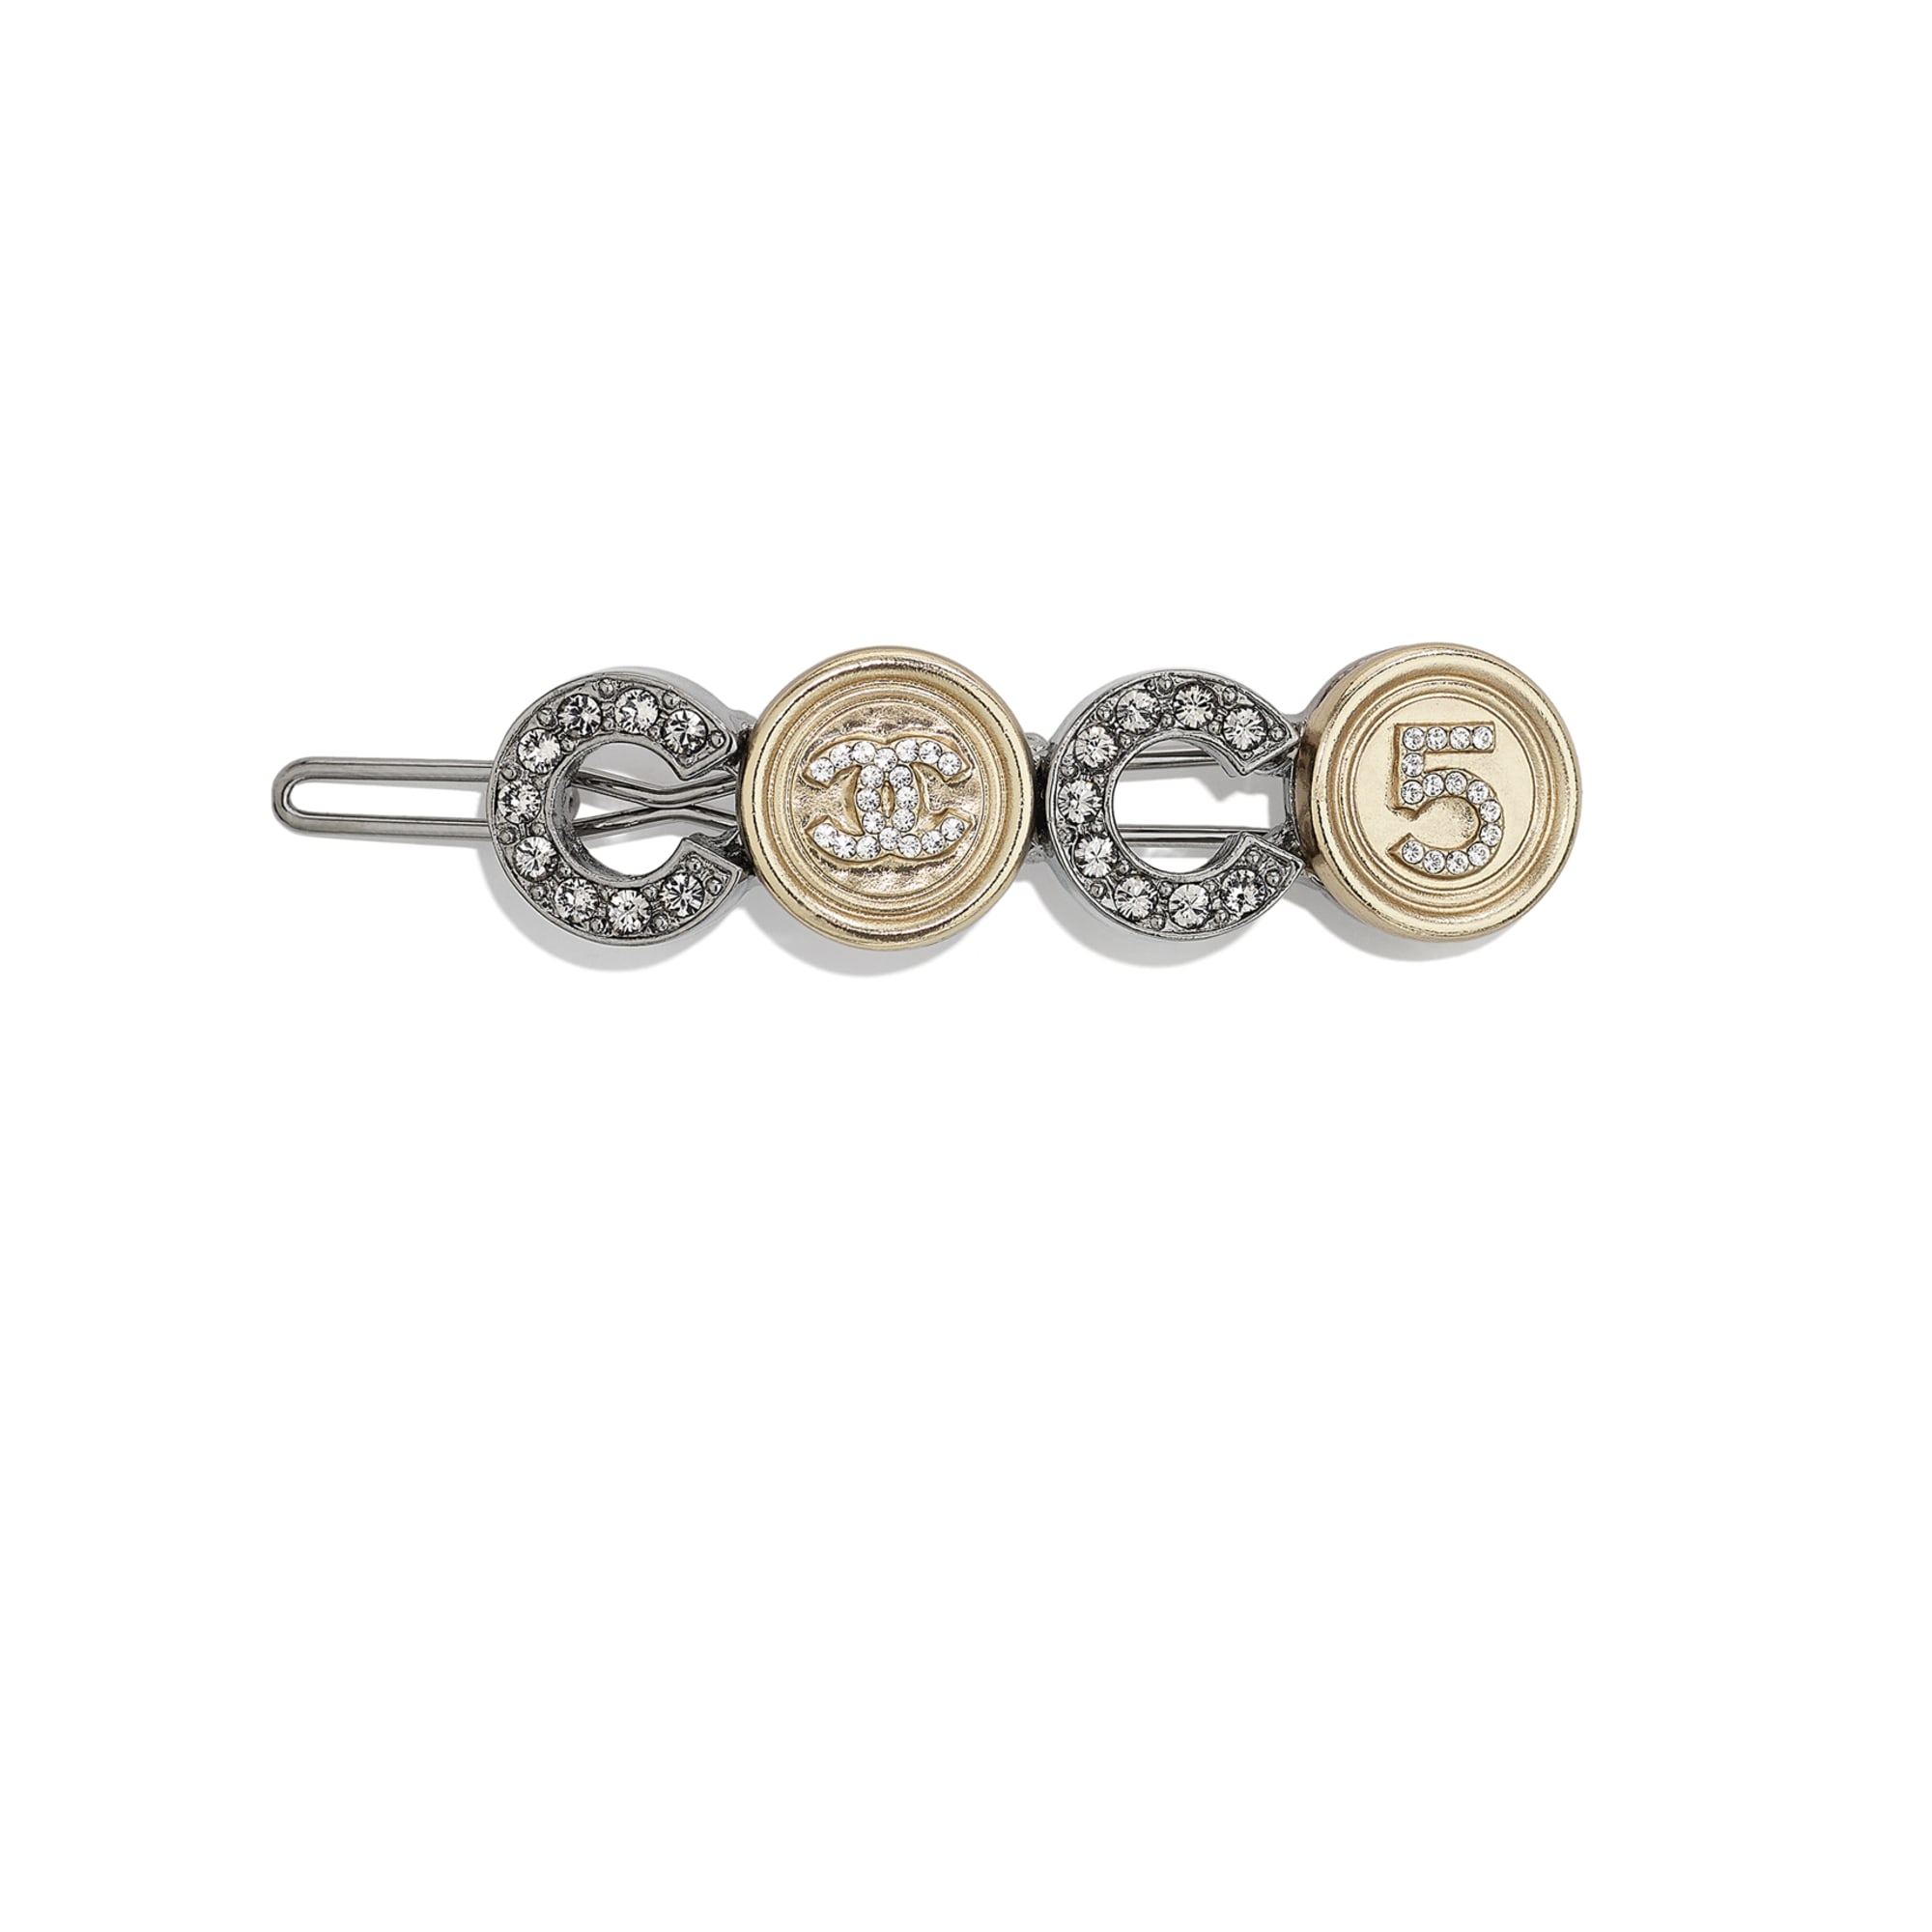 Hair Clip - Ruthenium, Gold & Crystal - Metal & Diamantés - CHANEL - Default view - see standard sized version